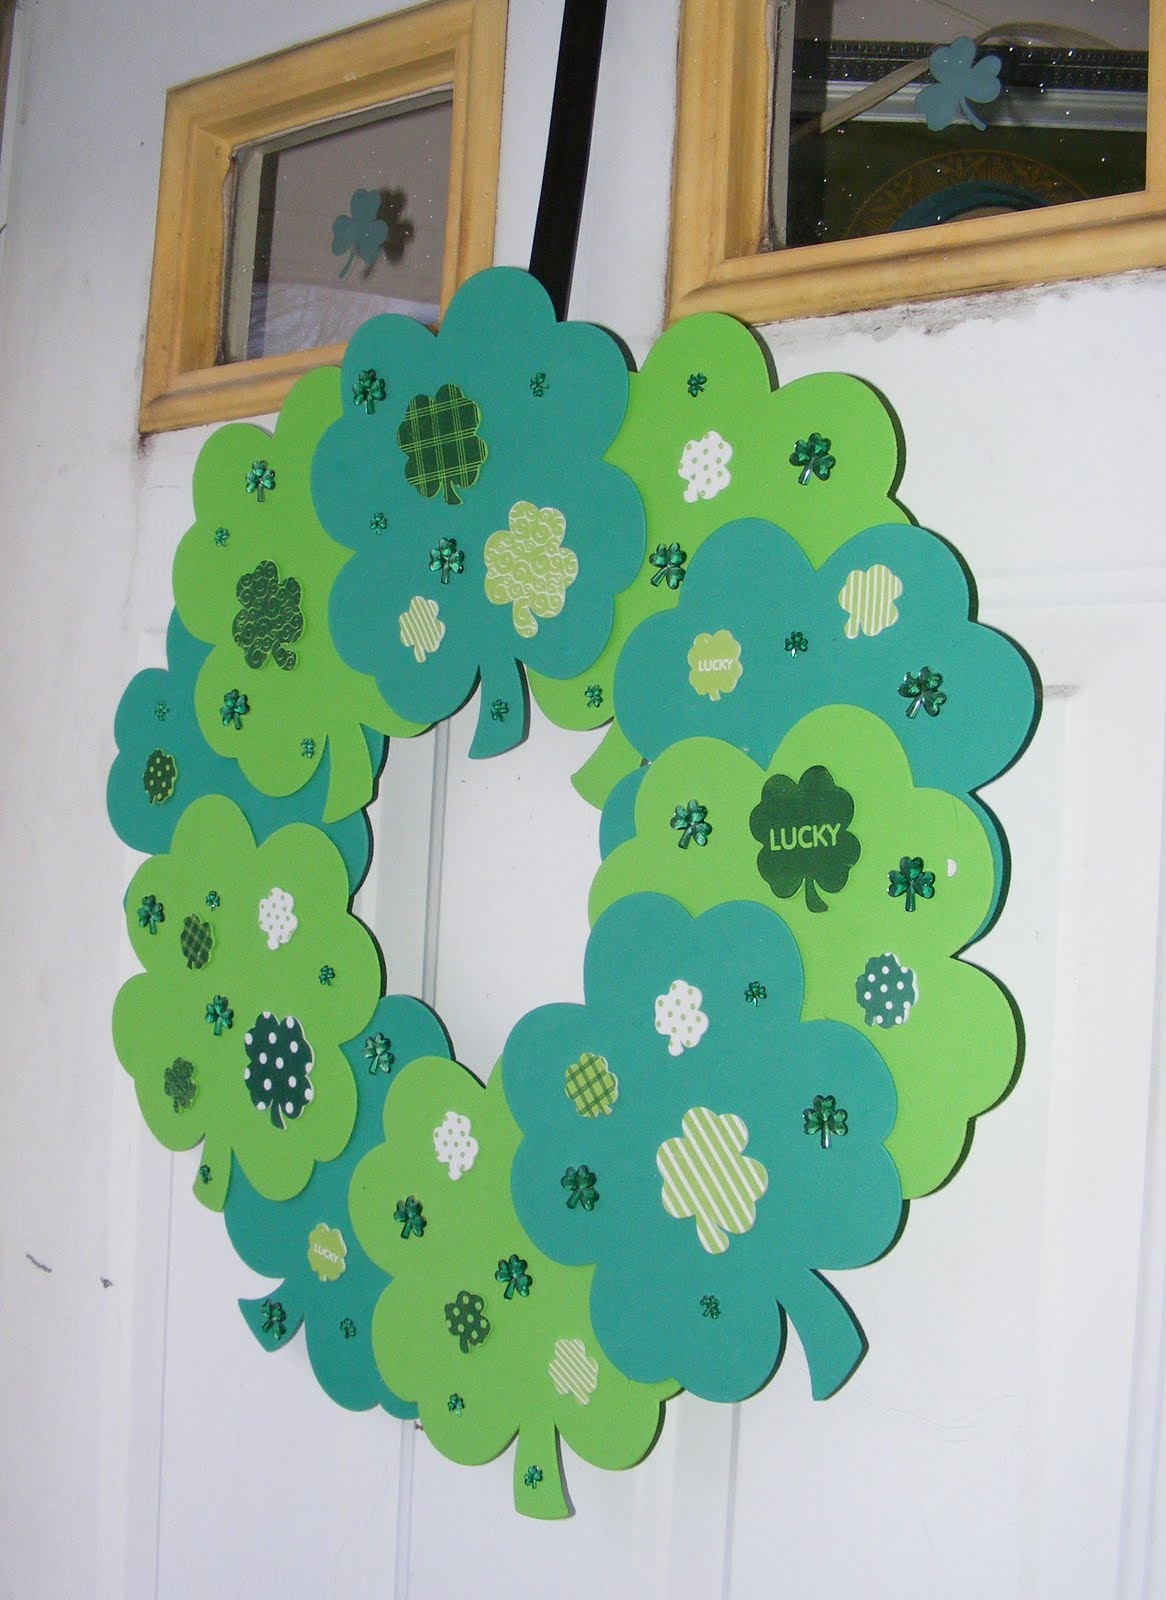 St. Patrick's Day Crafts for Kids | Wife, Mom, Woman